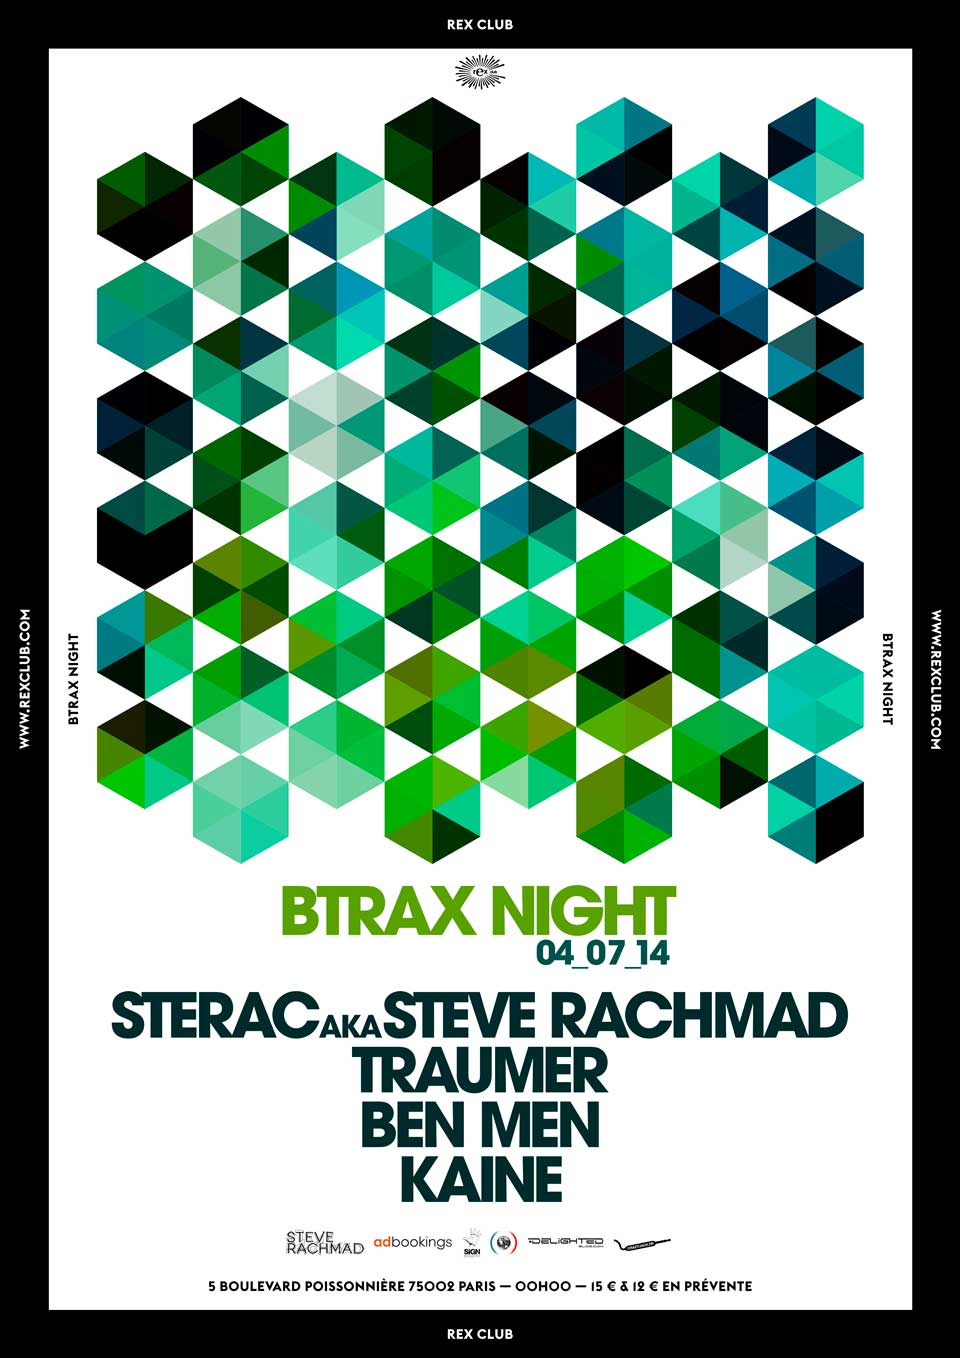 BTRAX night 04.07.14